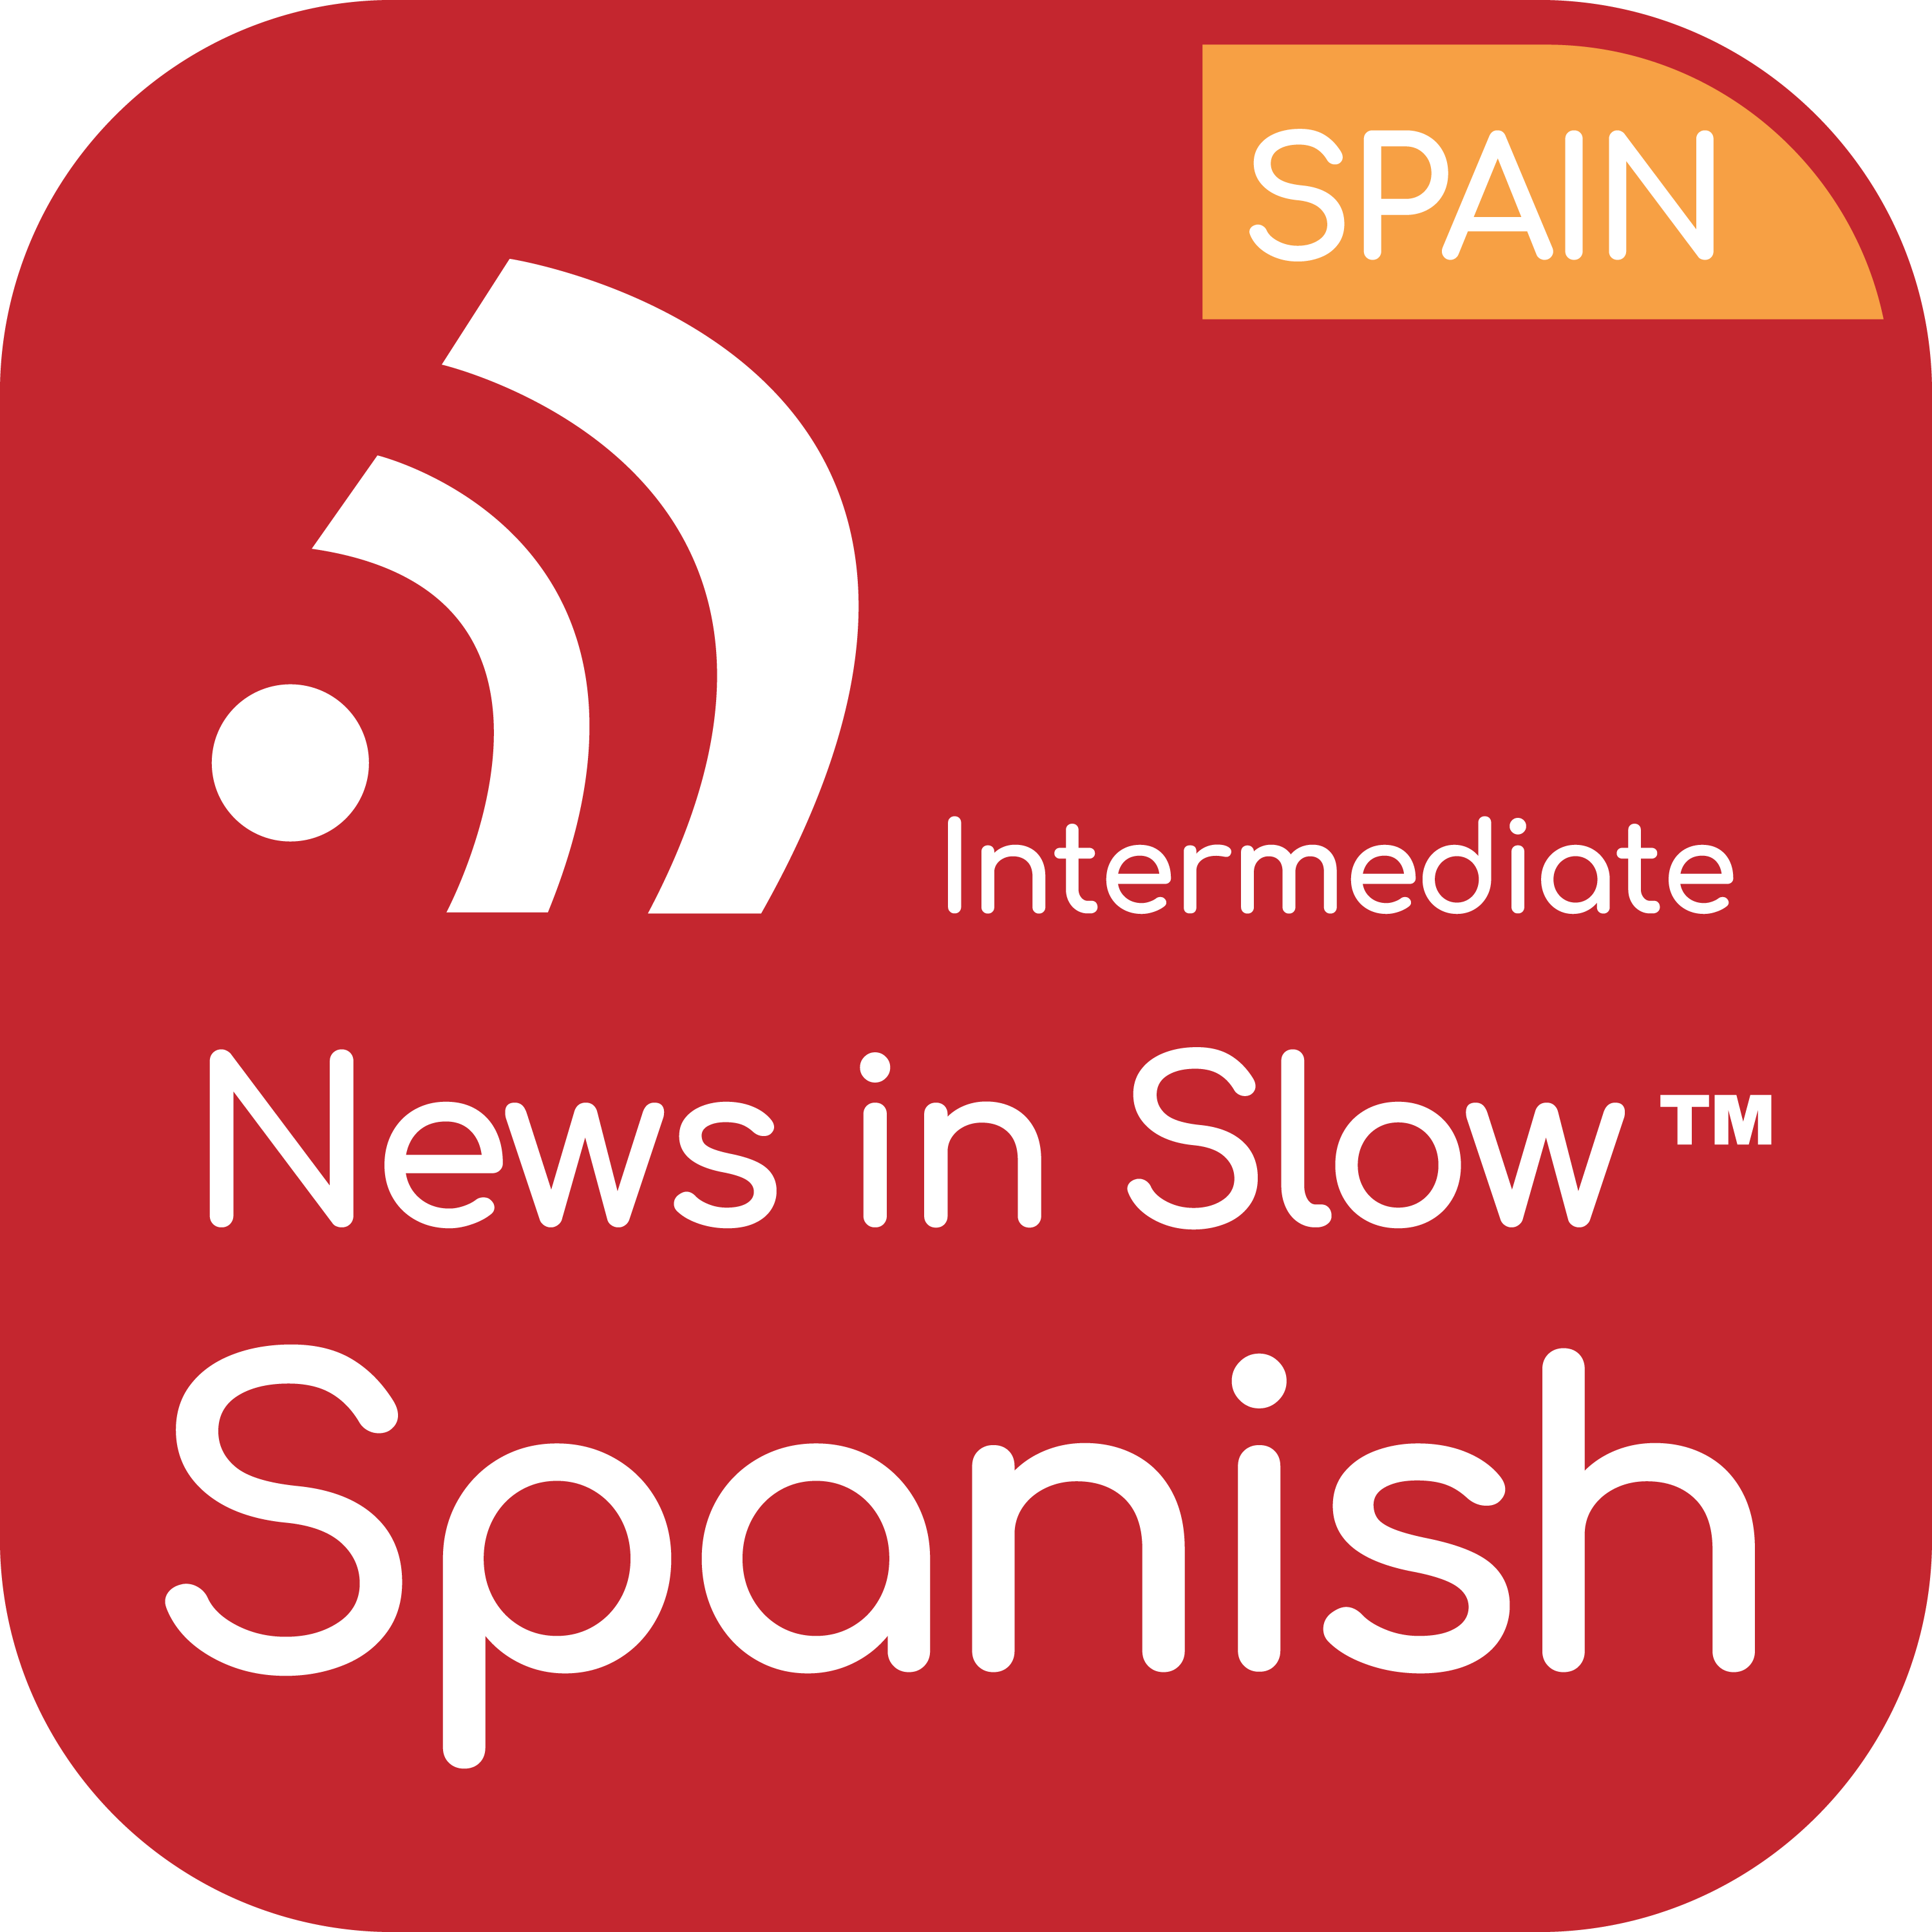 News in Slow Spanish - #636 - Study Spanish While Listening to the News